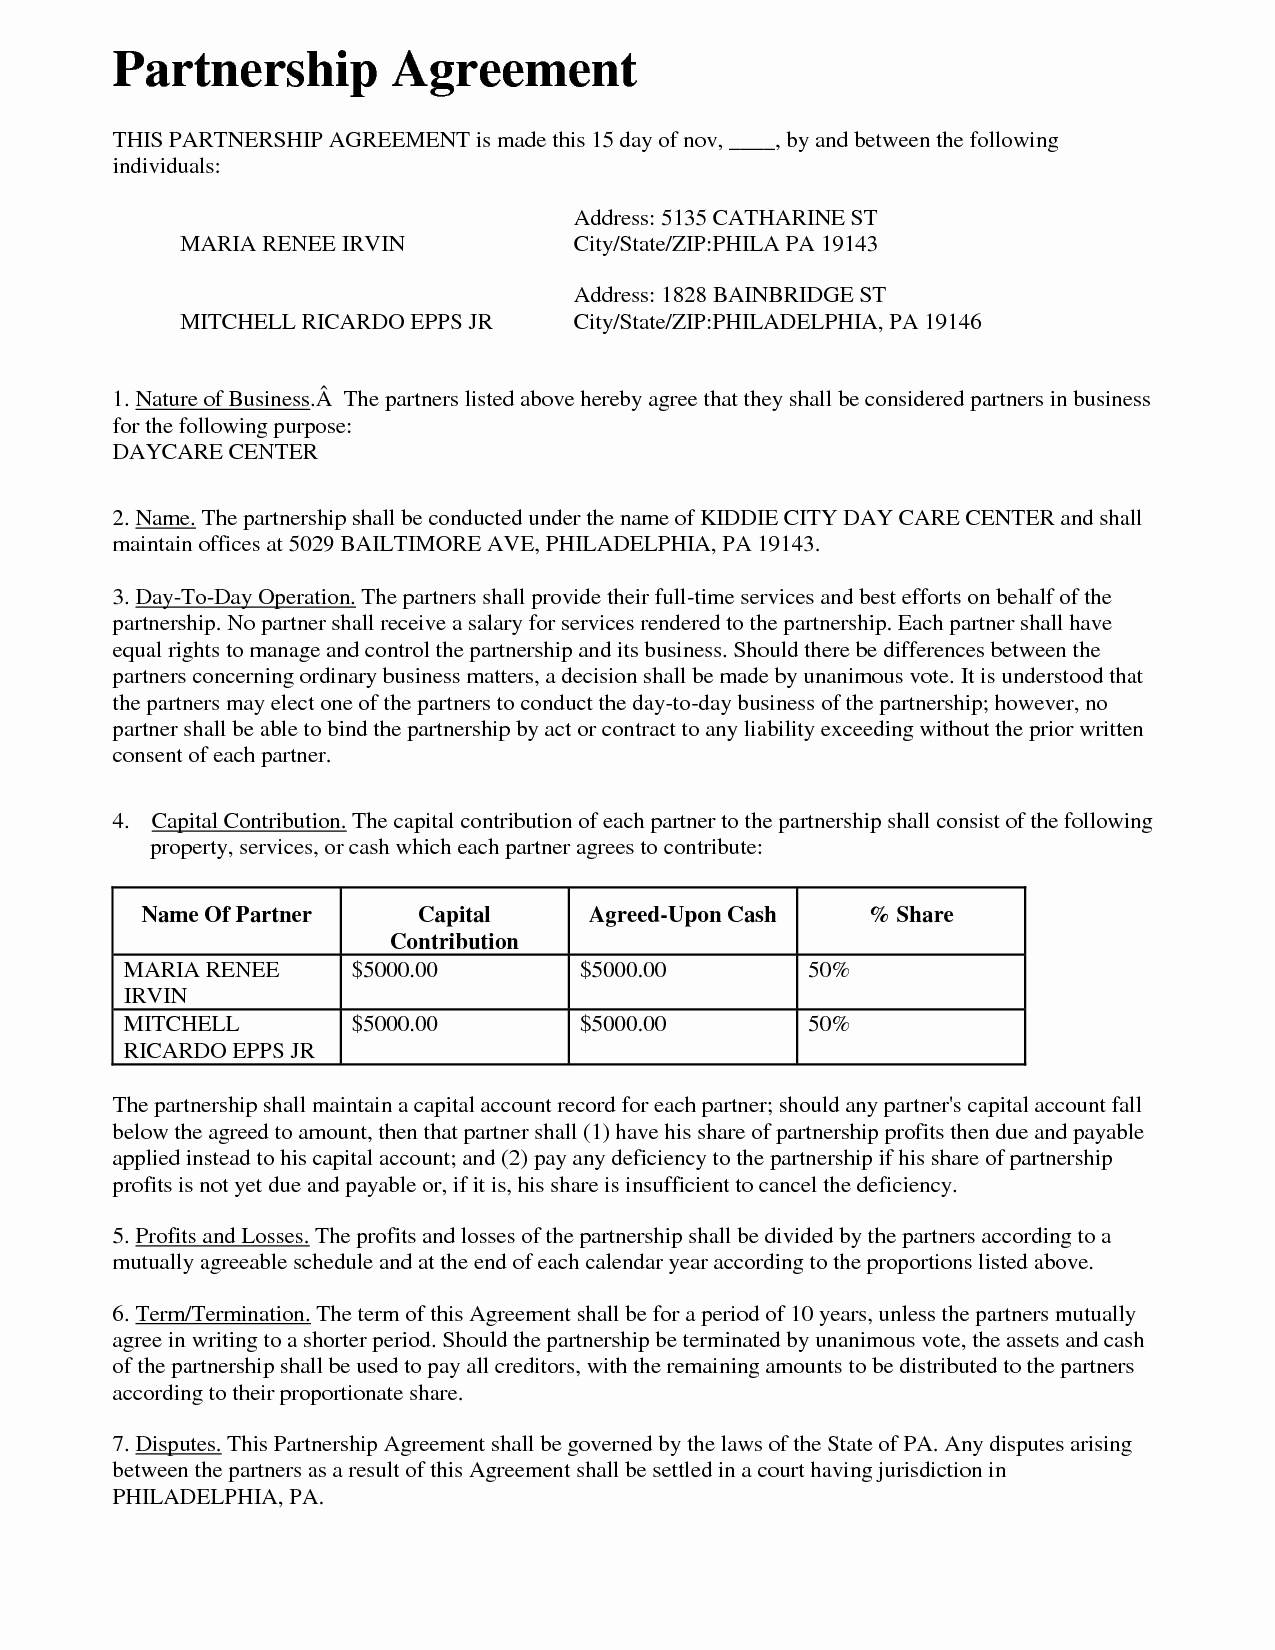 Affiliate Partnership Agreement Template New Partnership Agreement Free Printable Documents